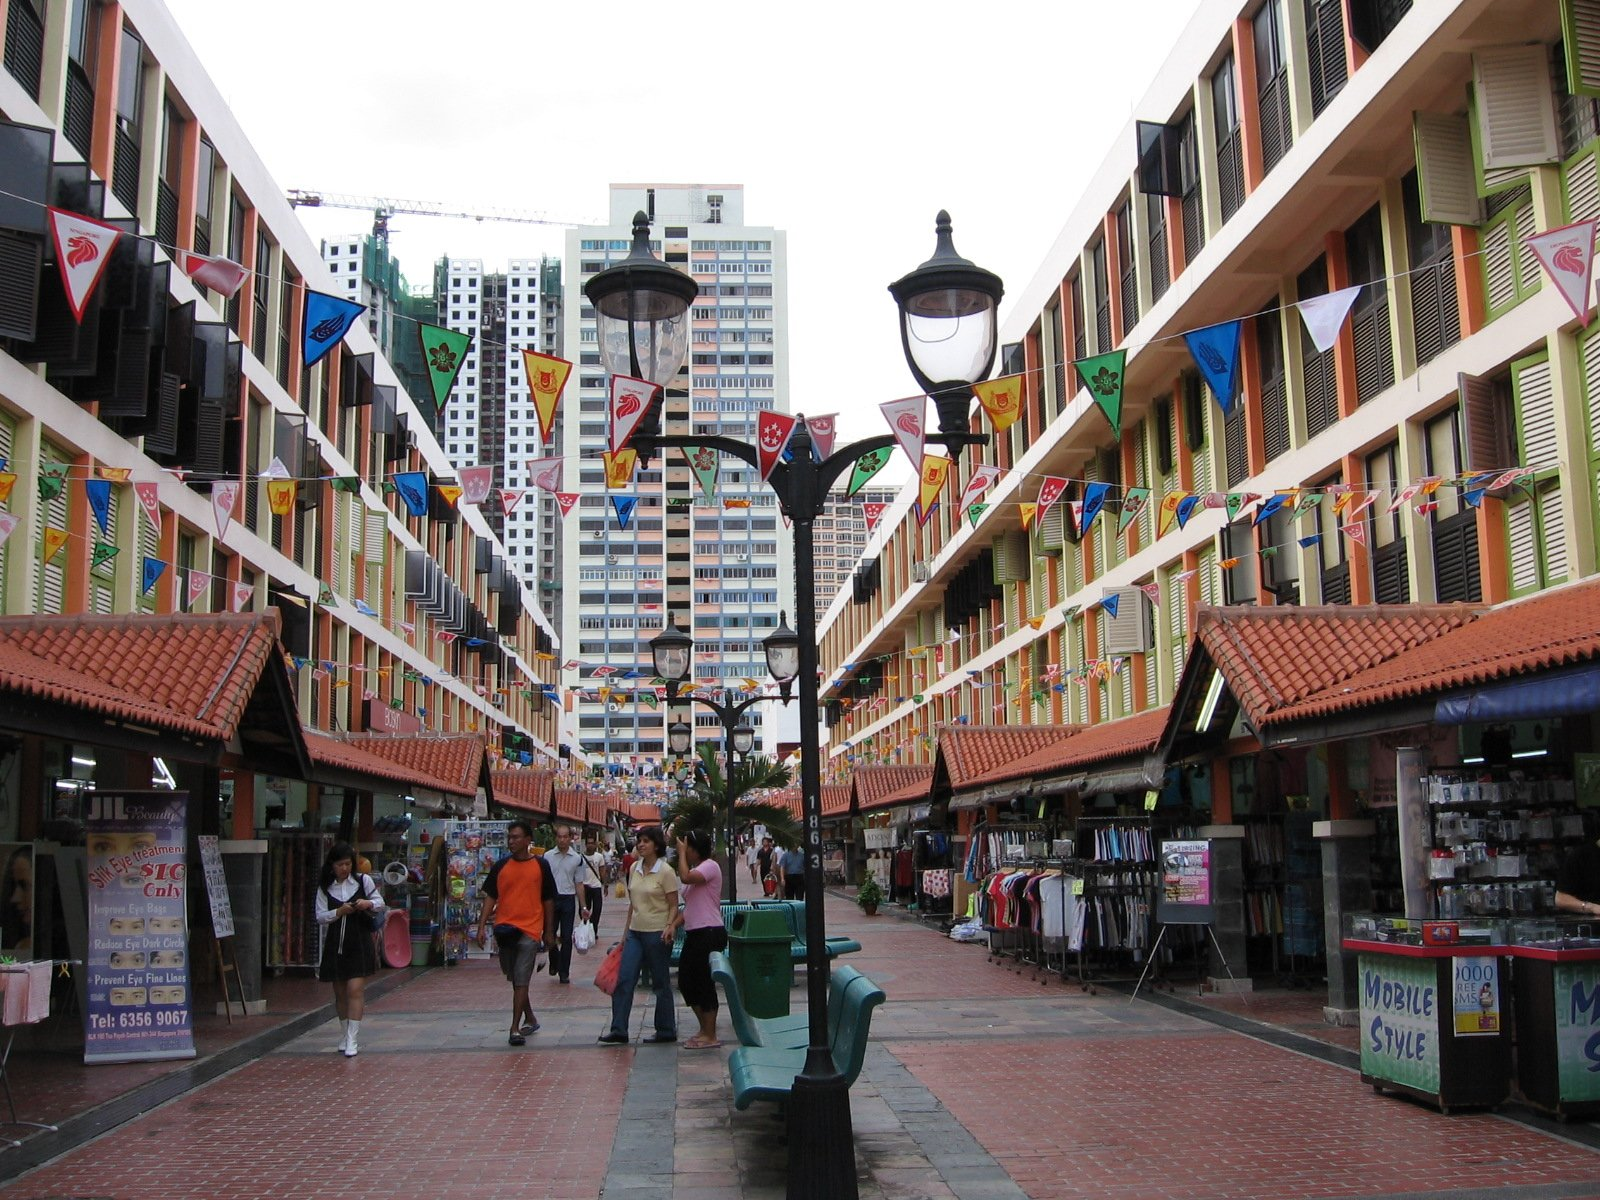 With its variety of shops and eateries, Toa Payoh is popular with the heartland crowd